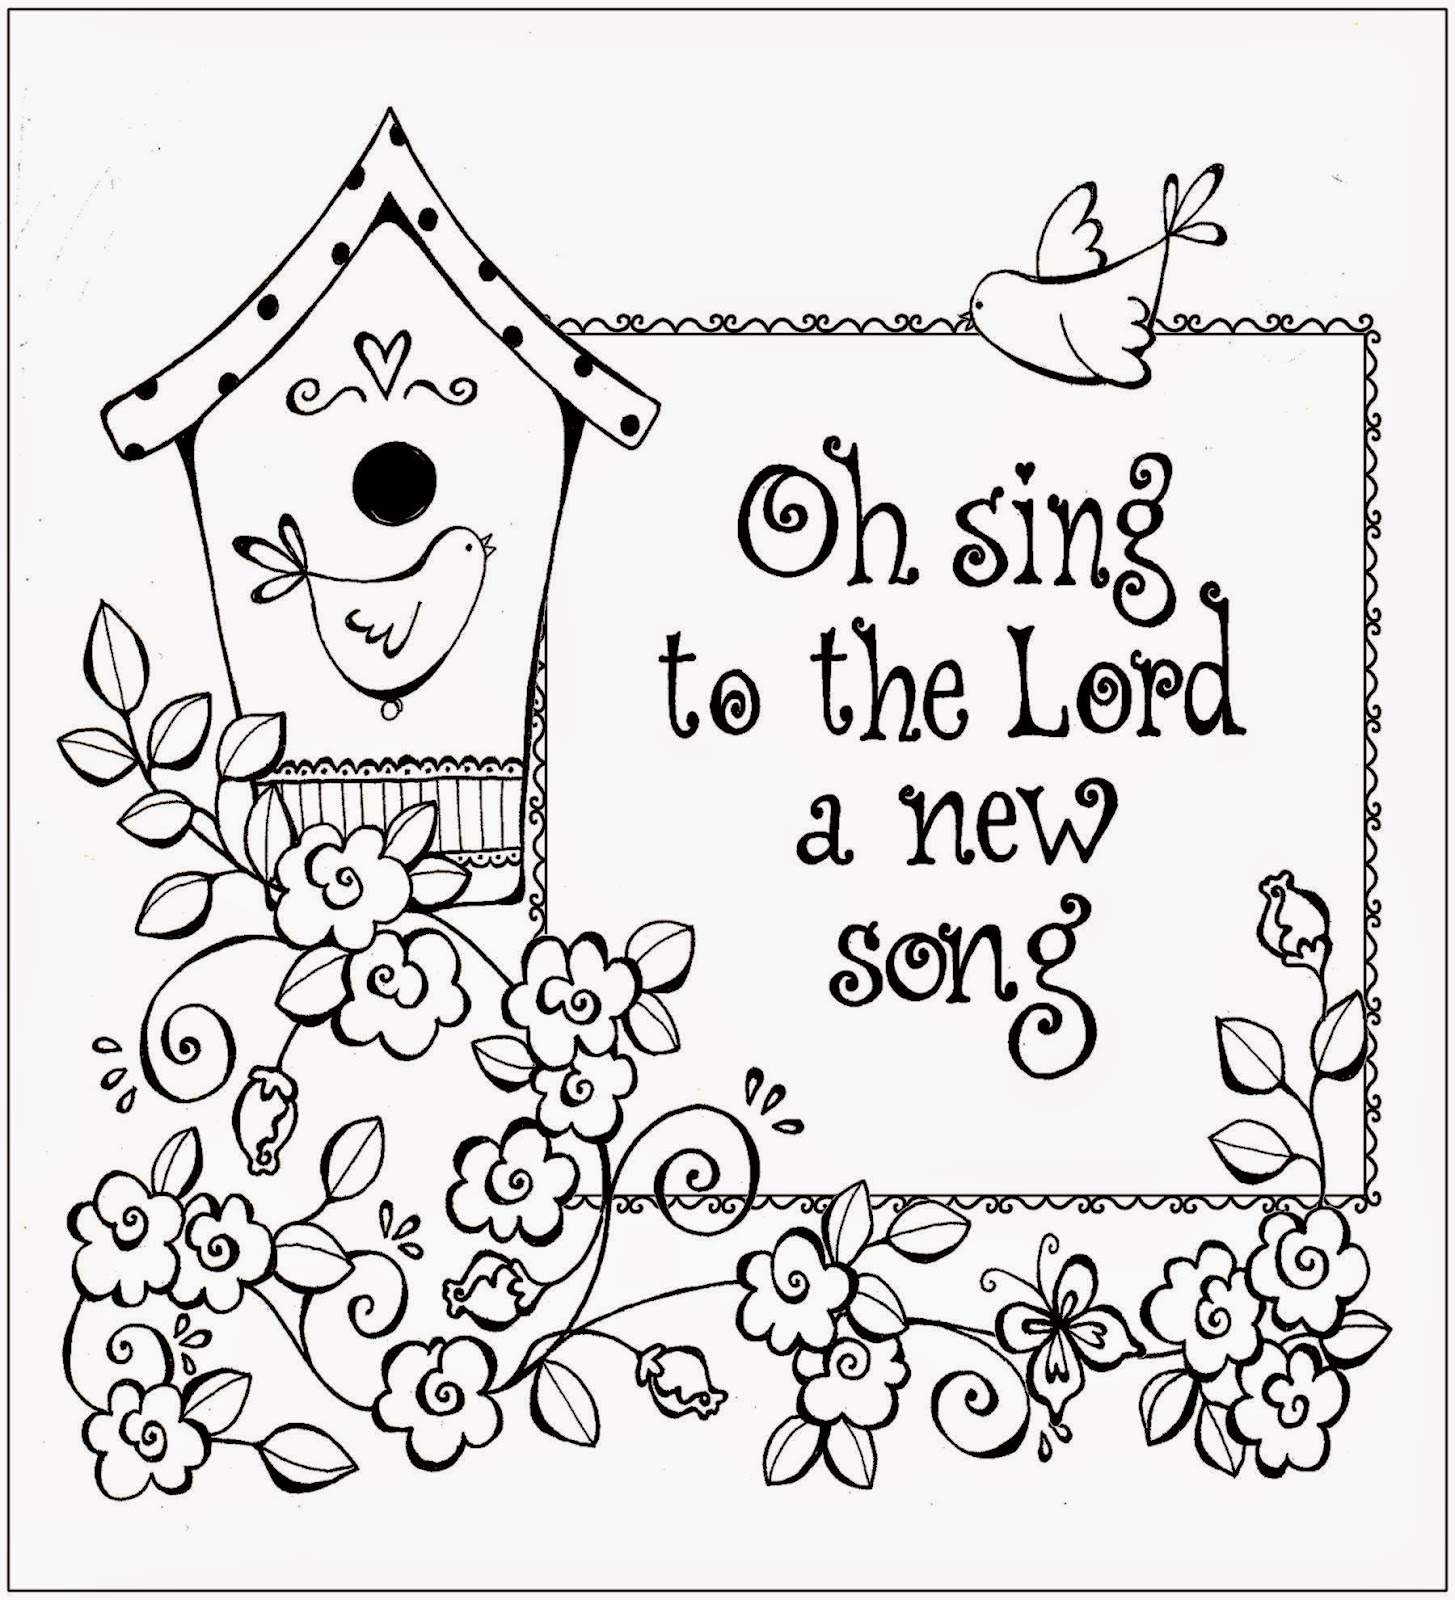 Sunday School Coloring Pages Free Coloring Sheet Sunday School Coloring Pages